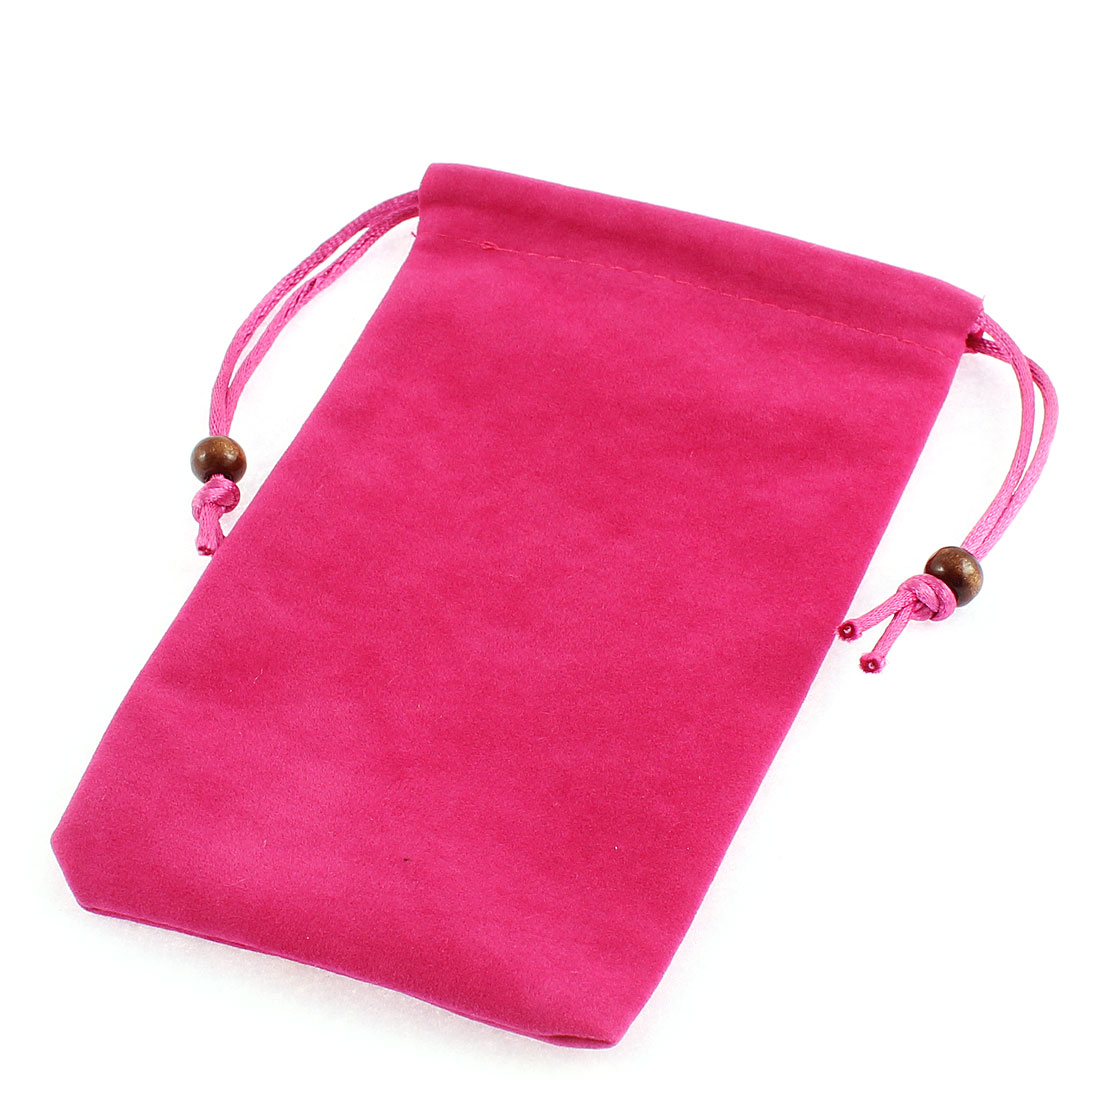 "Drawstring Closure Cell Phone Smartphone Pouch Sleeve Bag Fuchsia 6"" Length"